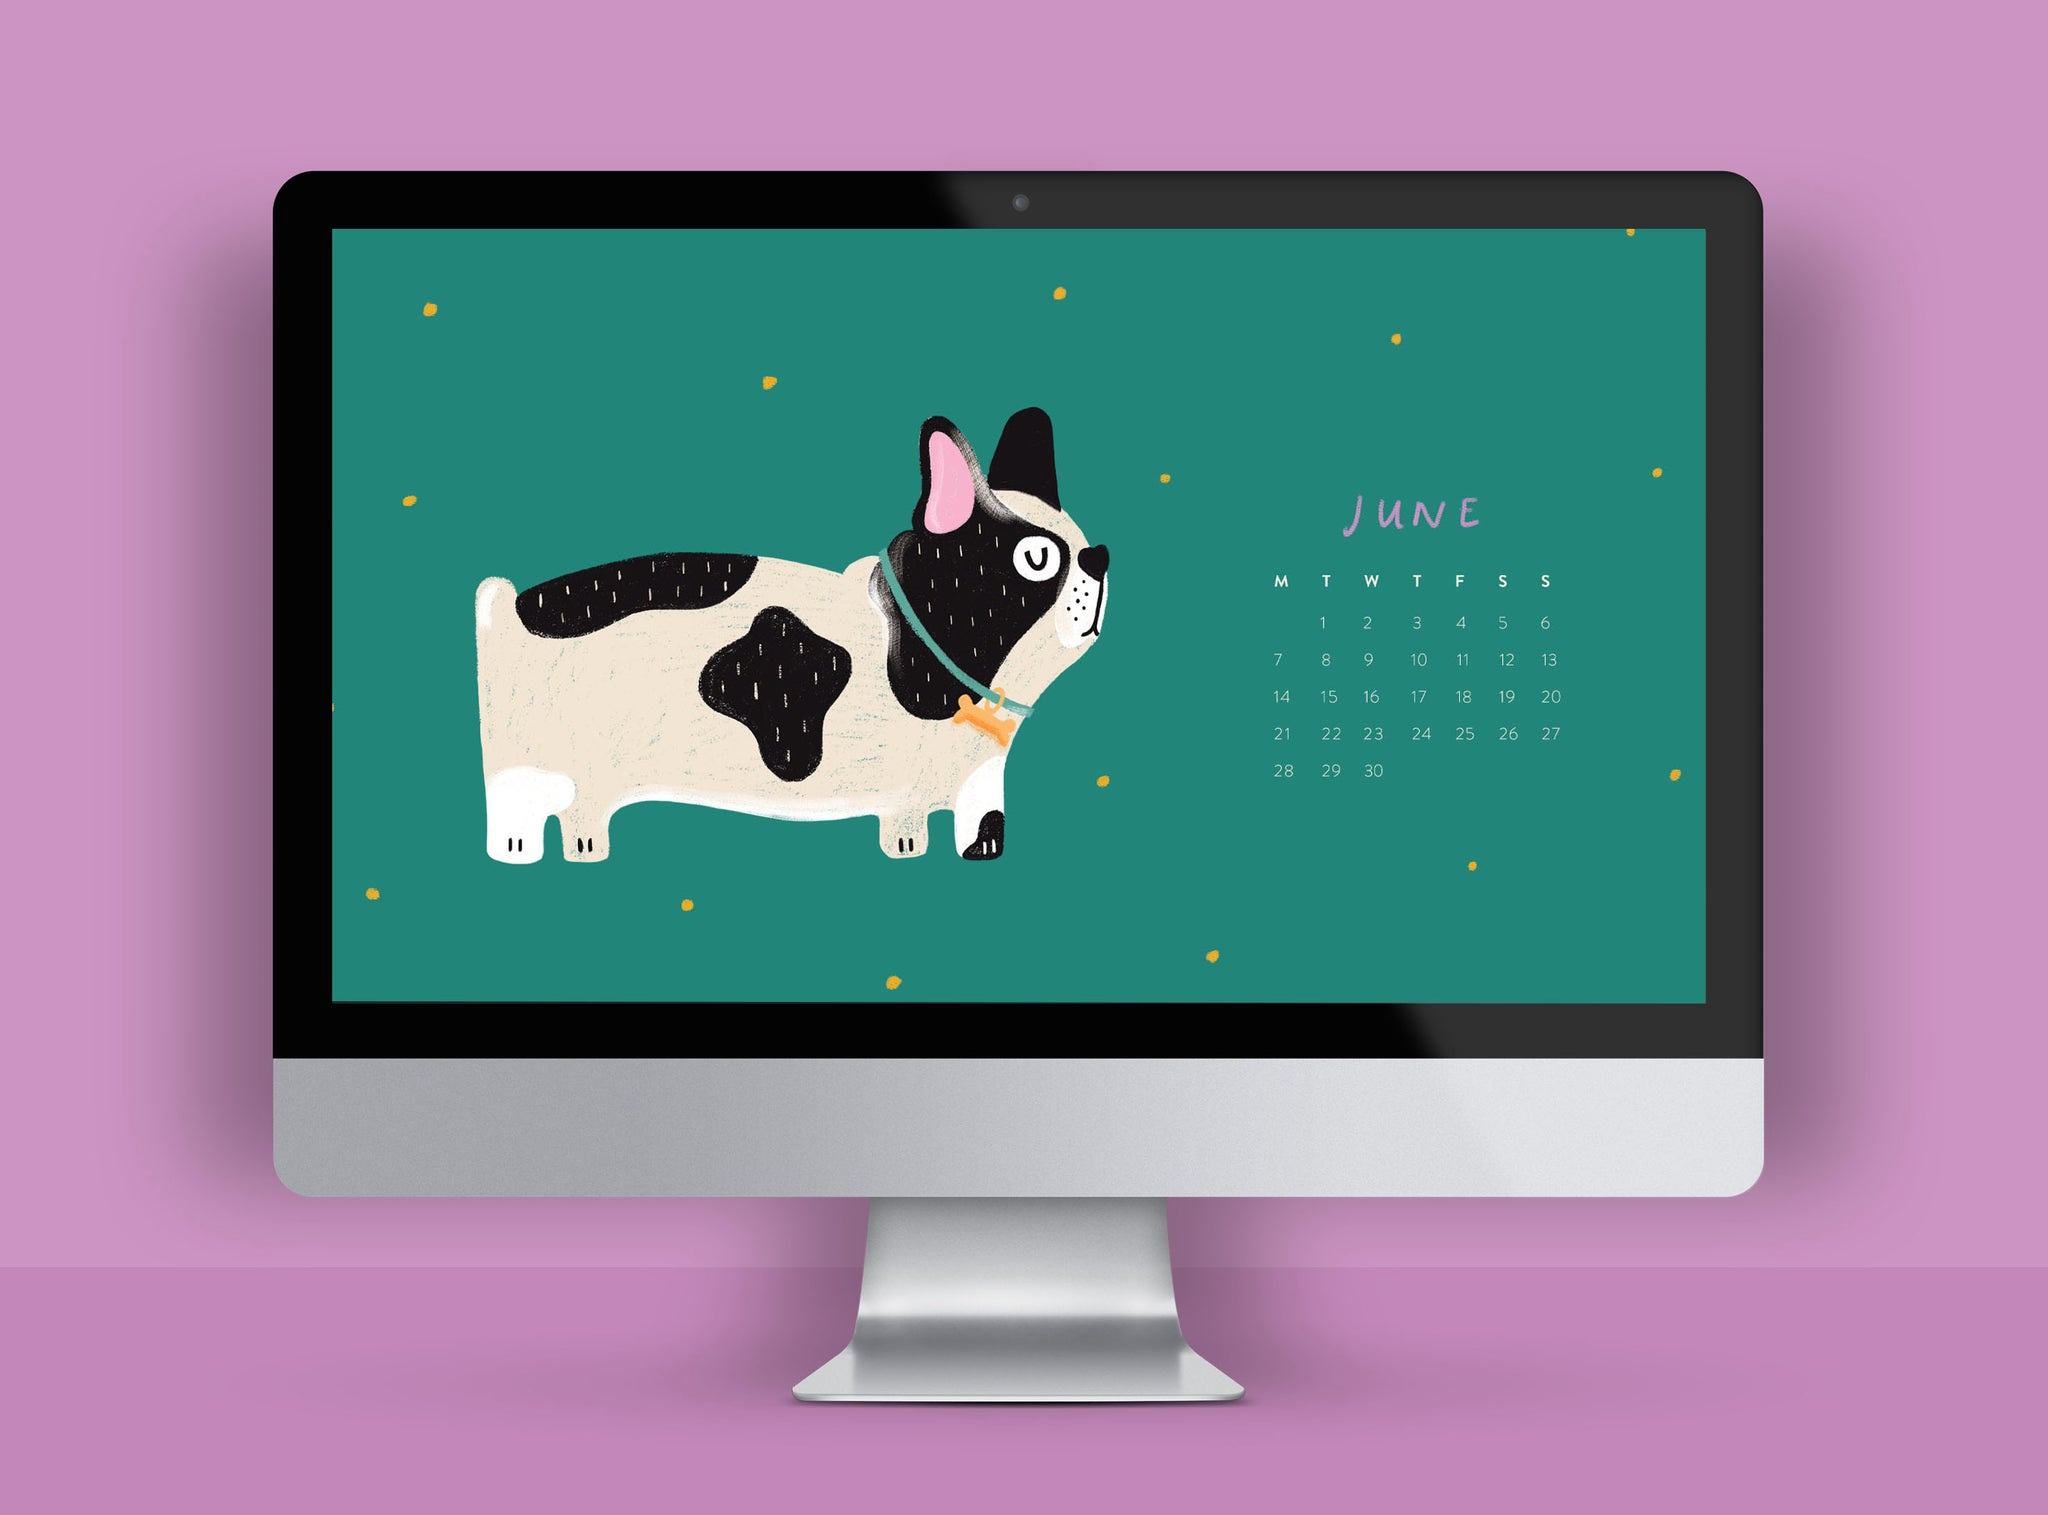 Cute Free HD wallpaper for desktop, illustrated french bull dog